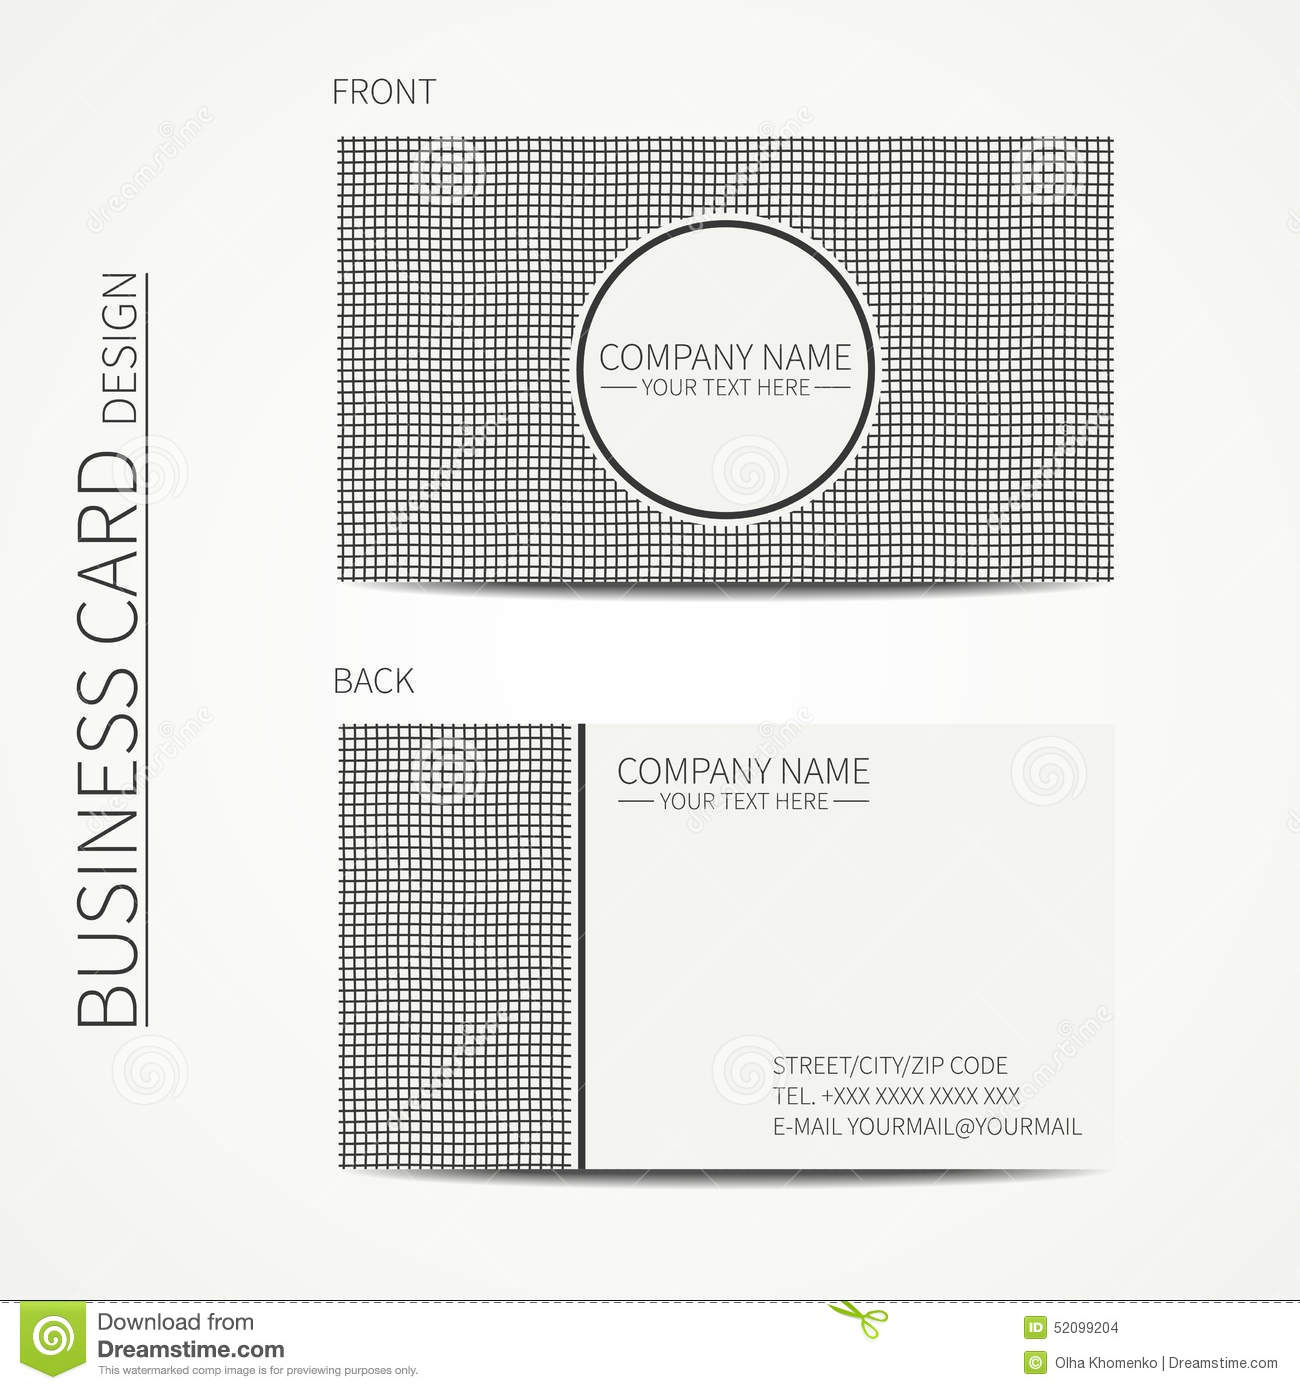 Line Card Examples: Simple Striped Pinwheel On Bar Royalty-Free Stock Photo